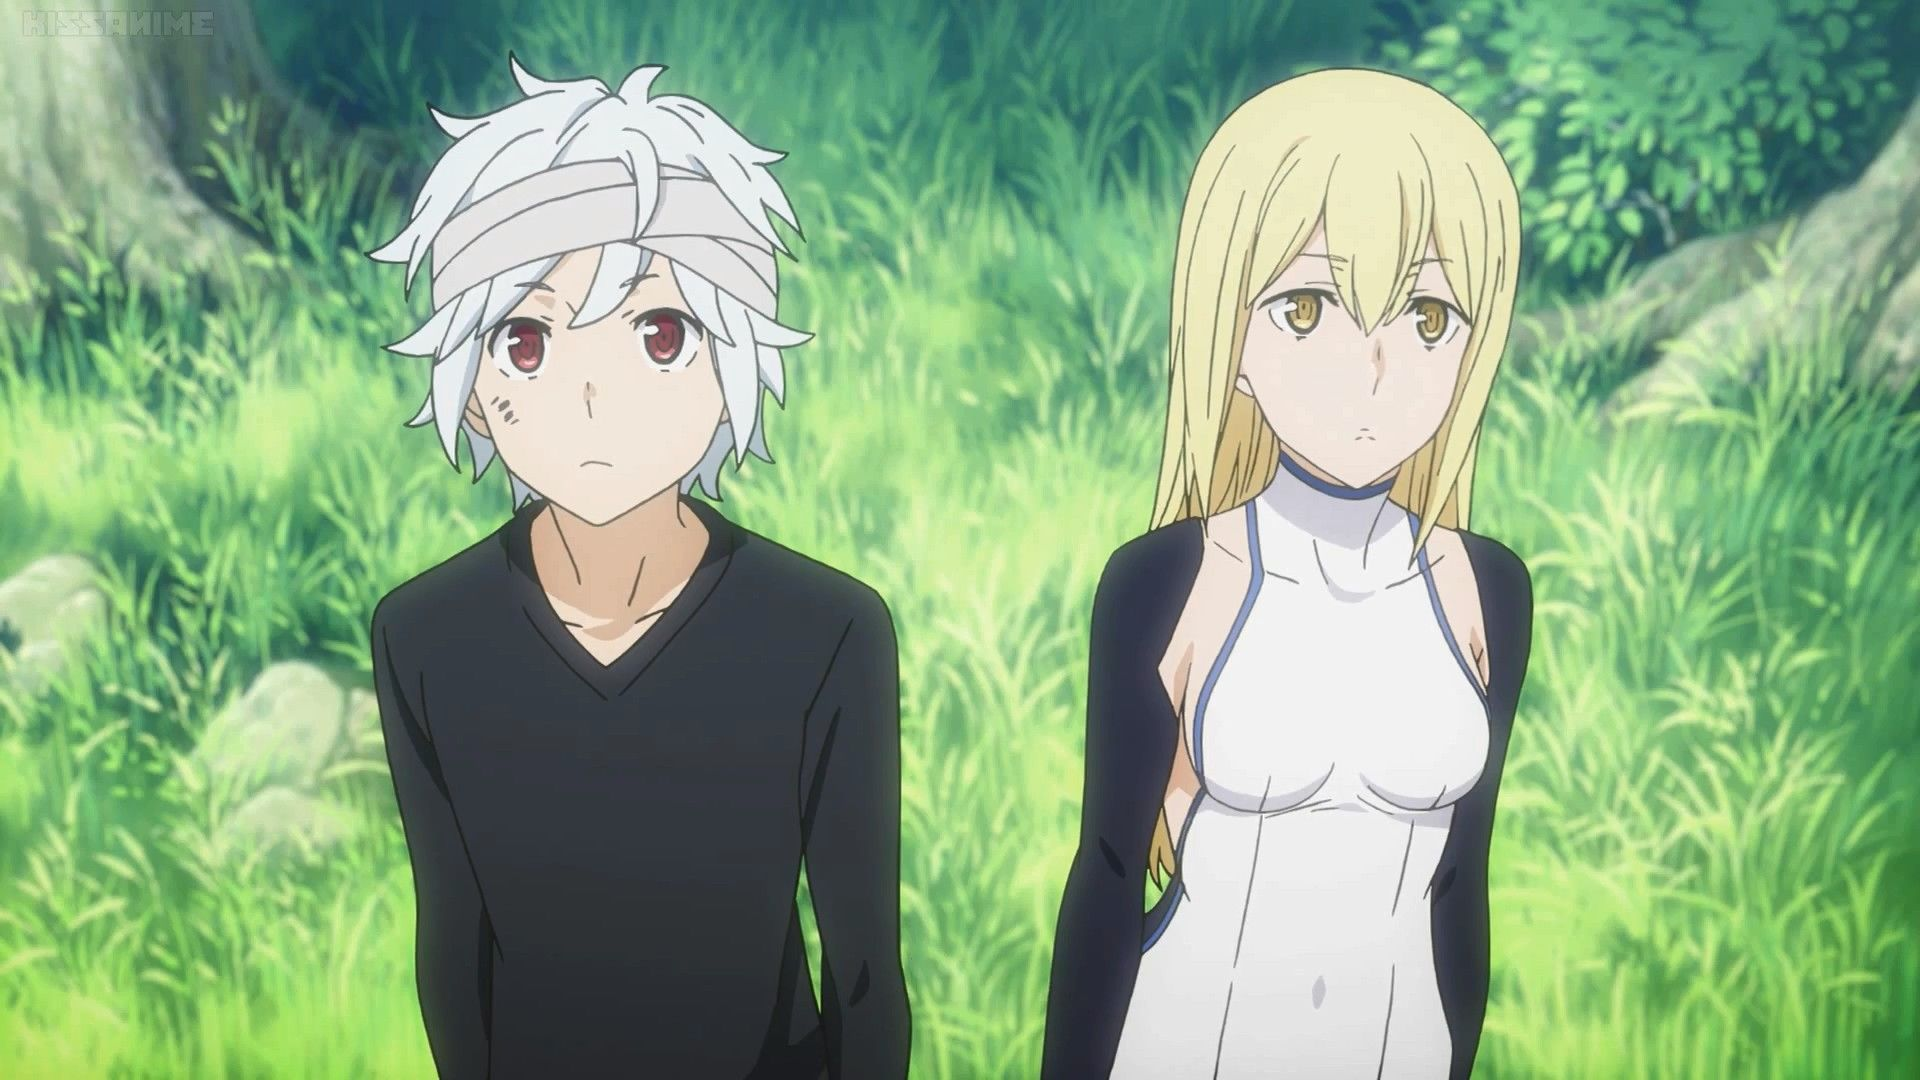 Bell & Ais #Danmachi #Crunchyroll #anime #swordoratoria | Is It